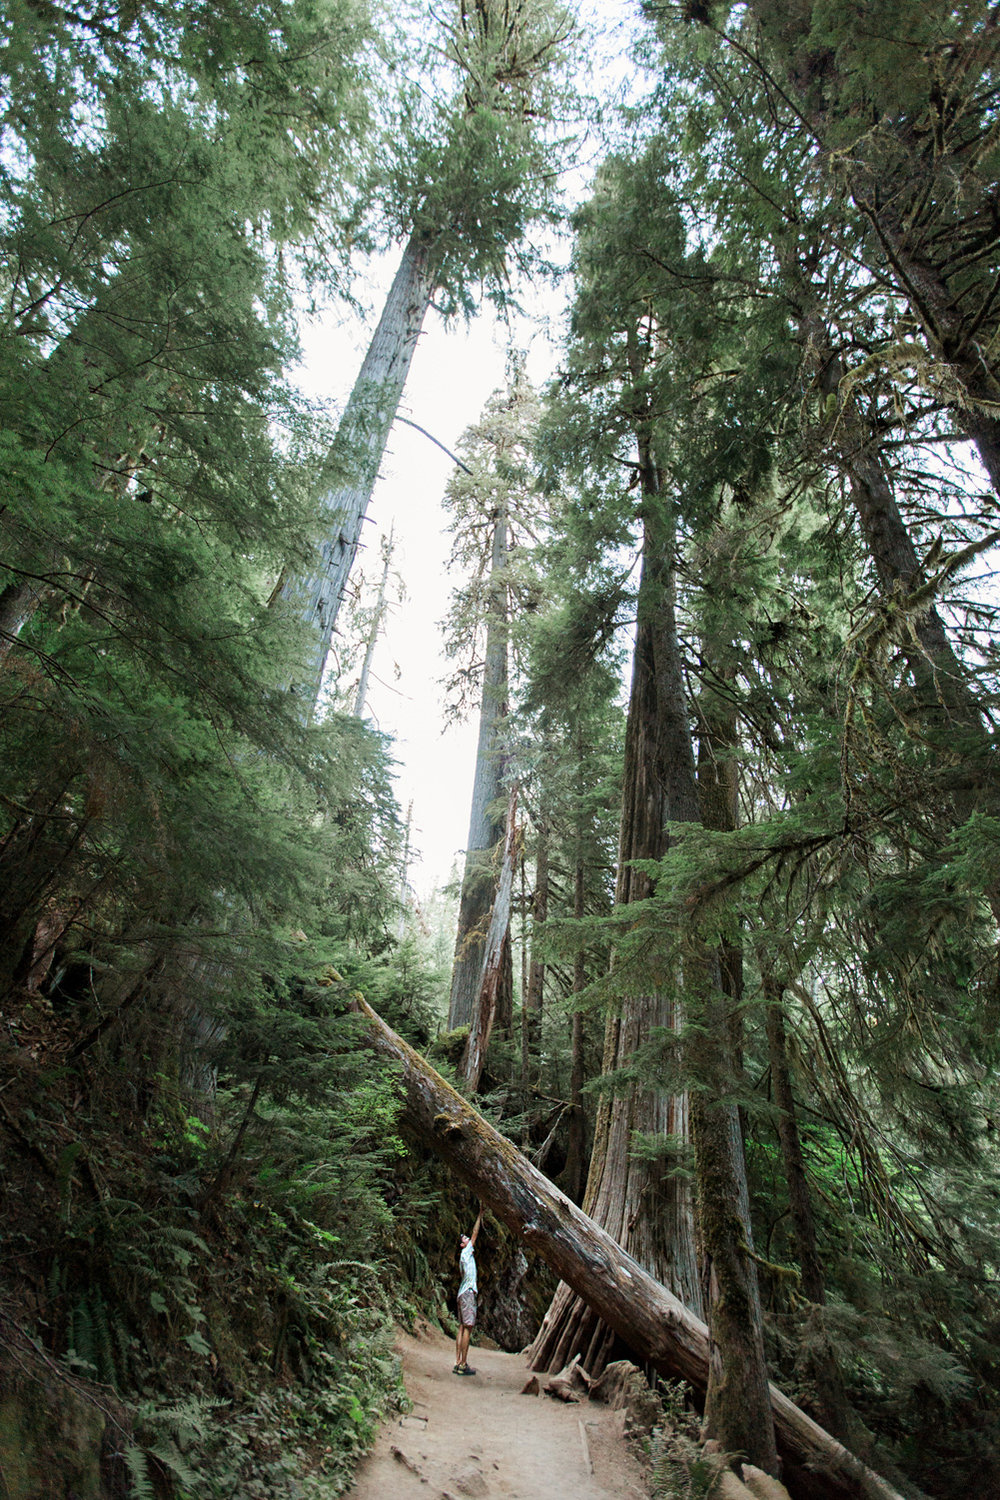 CindyGiovagnoli_Redwoods_CraterLake_MountRainier_PNW_National_Park_trees_camp_road_trip-013.jpg